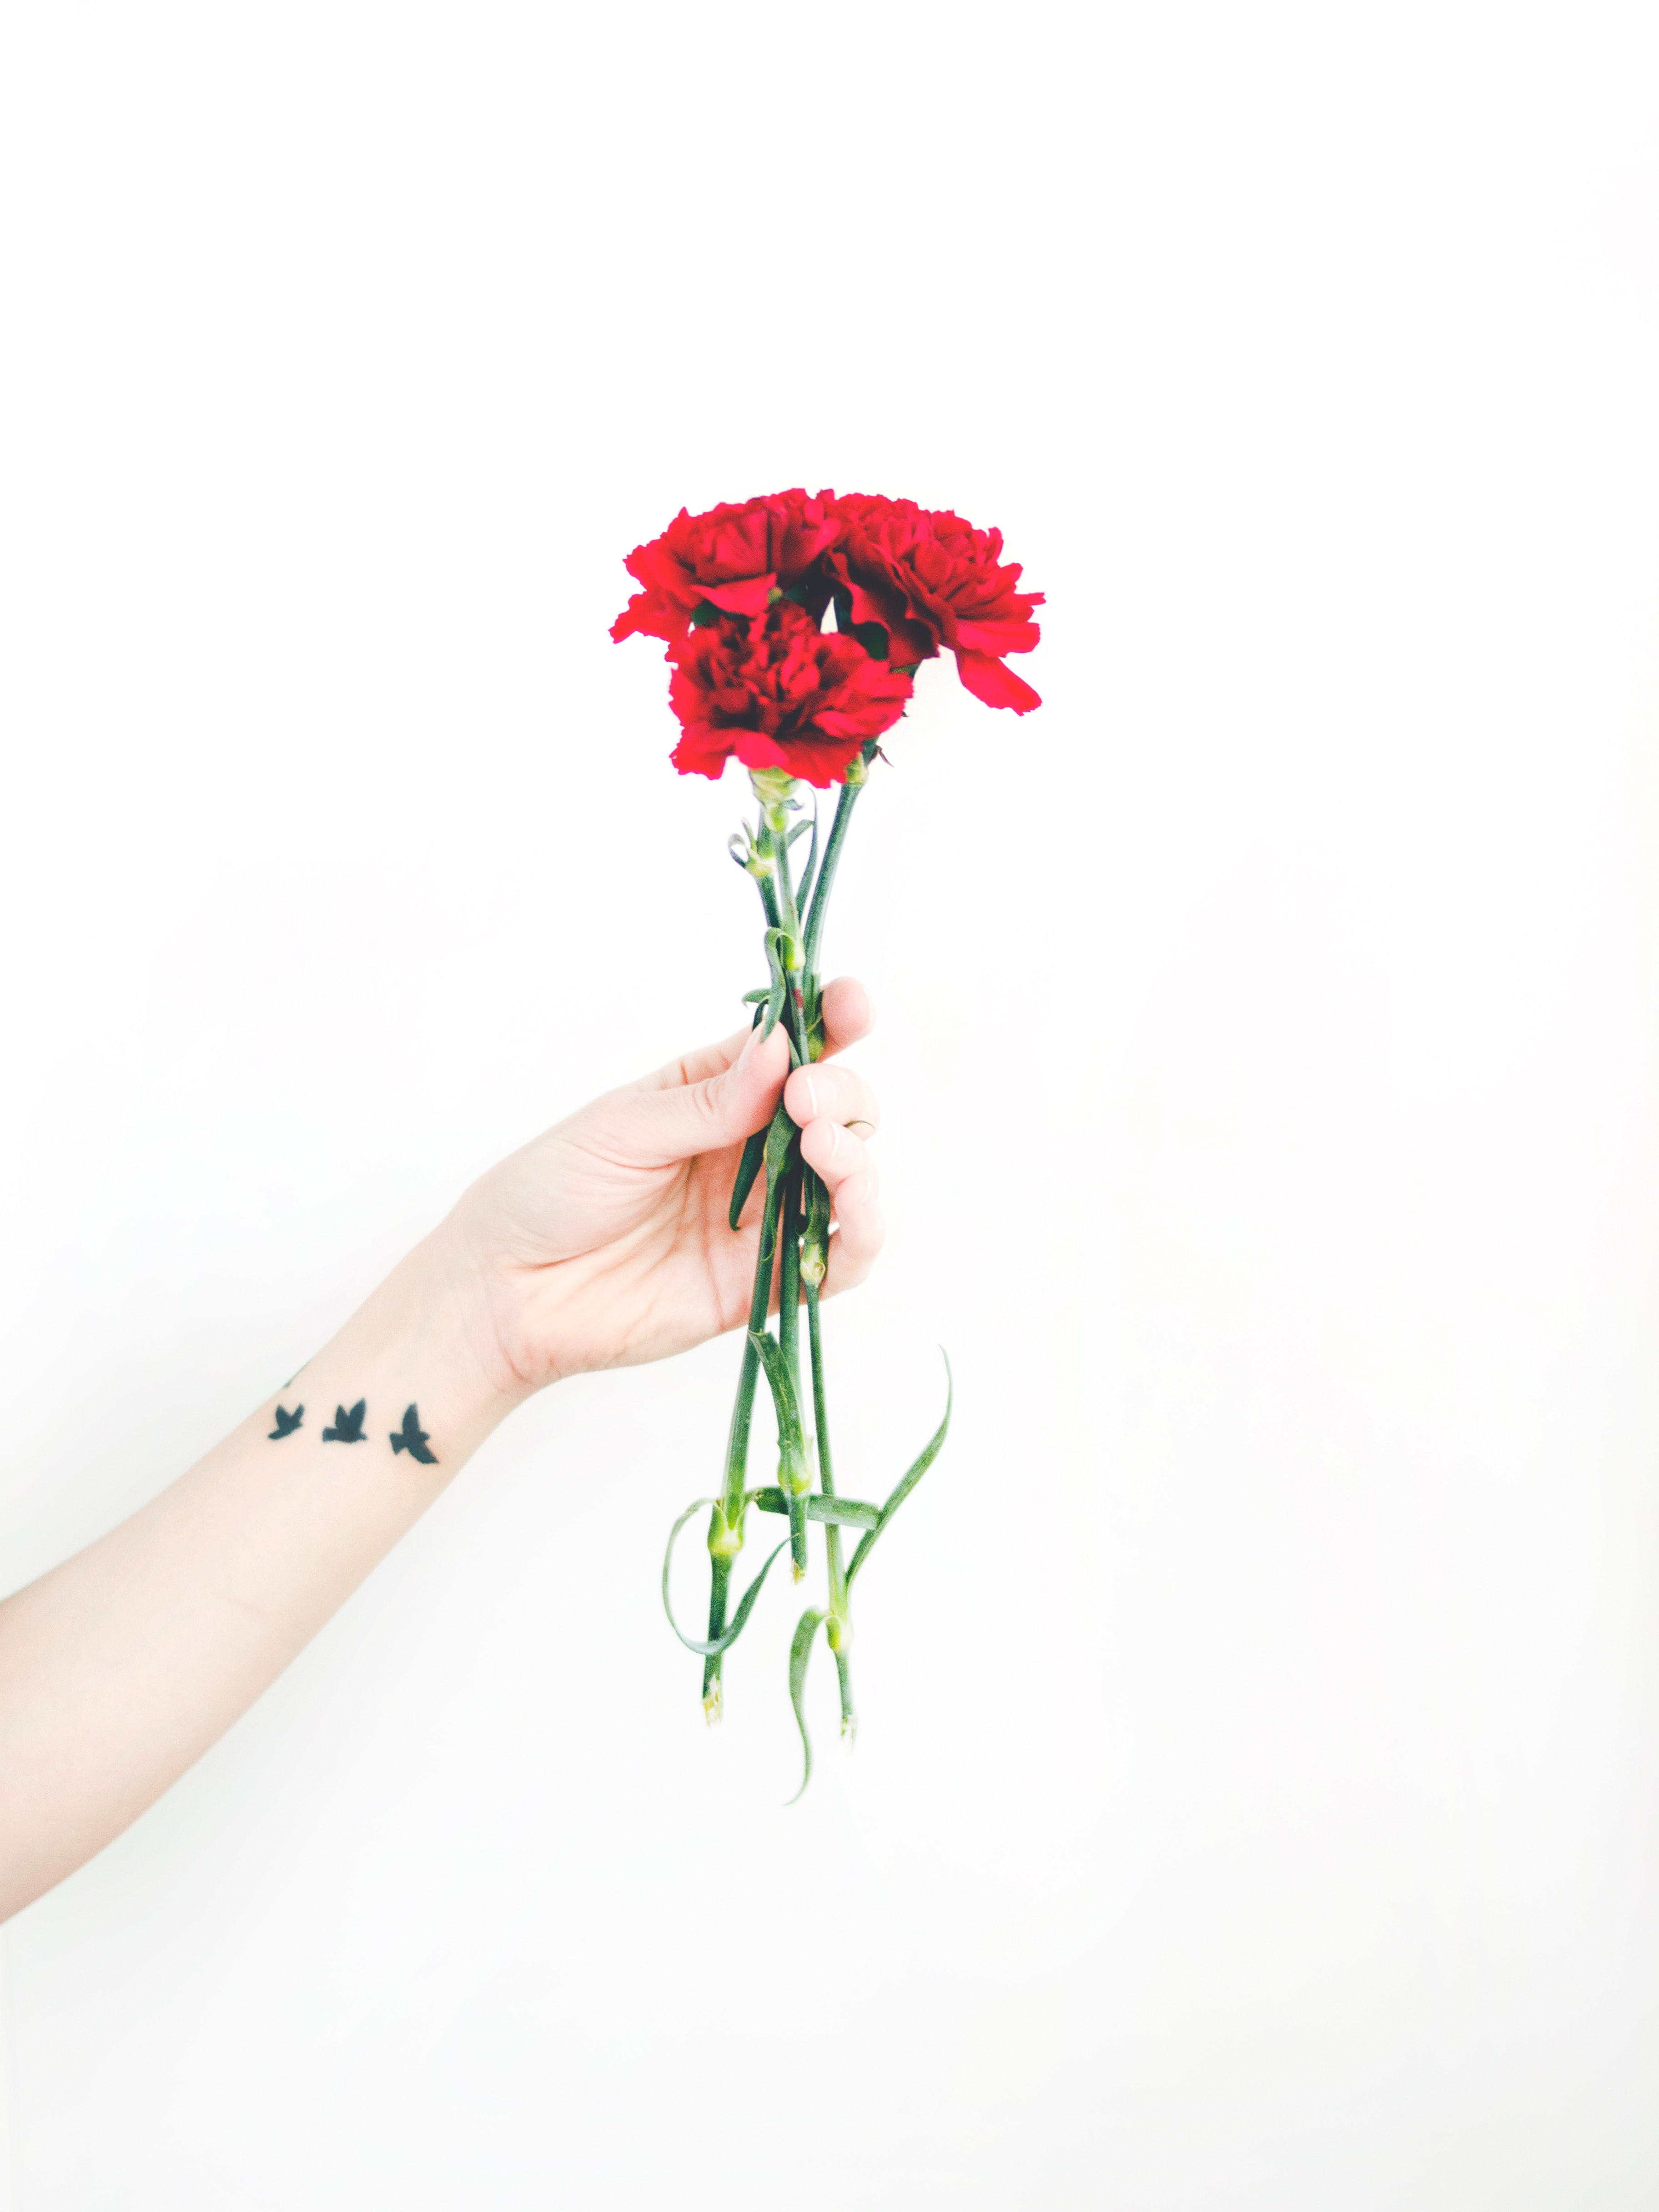 Free photo photo of person holding bouquet of red carnations photo of person holding bouquet of red carnations izmirmasajfo Choice Image